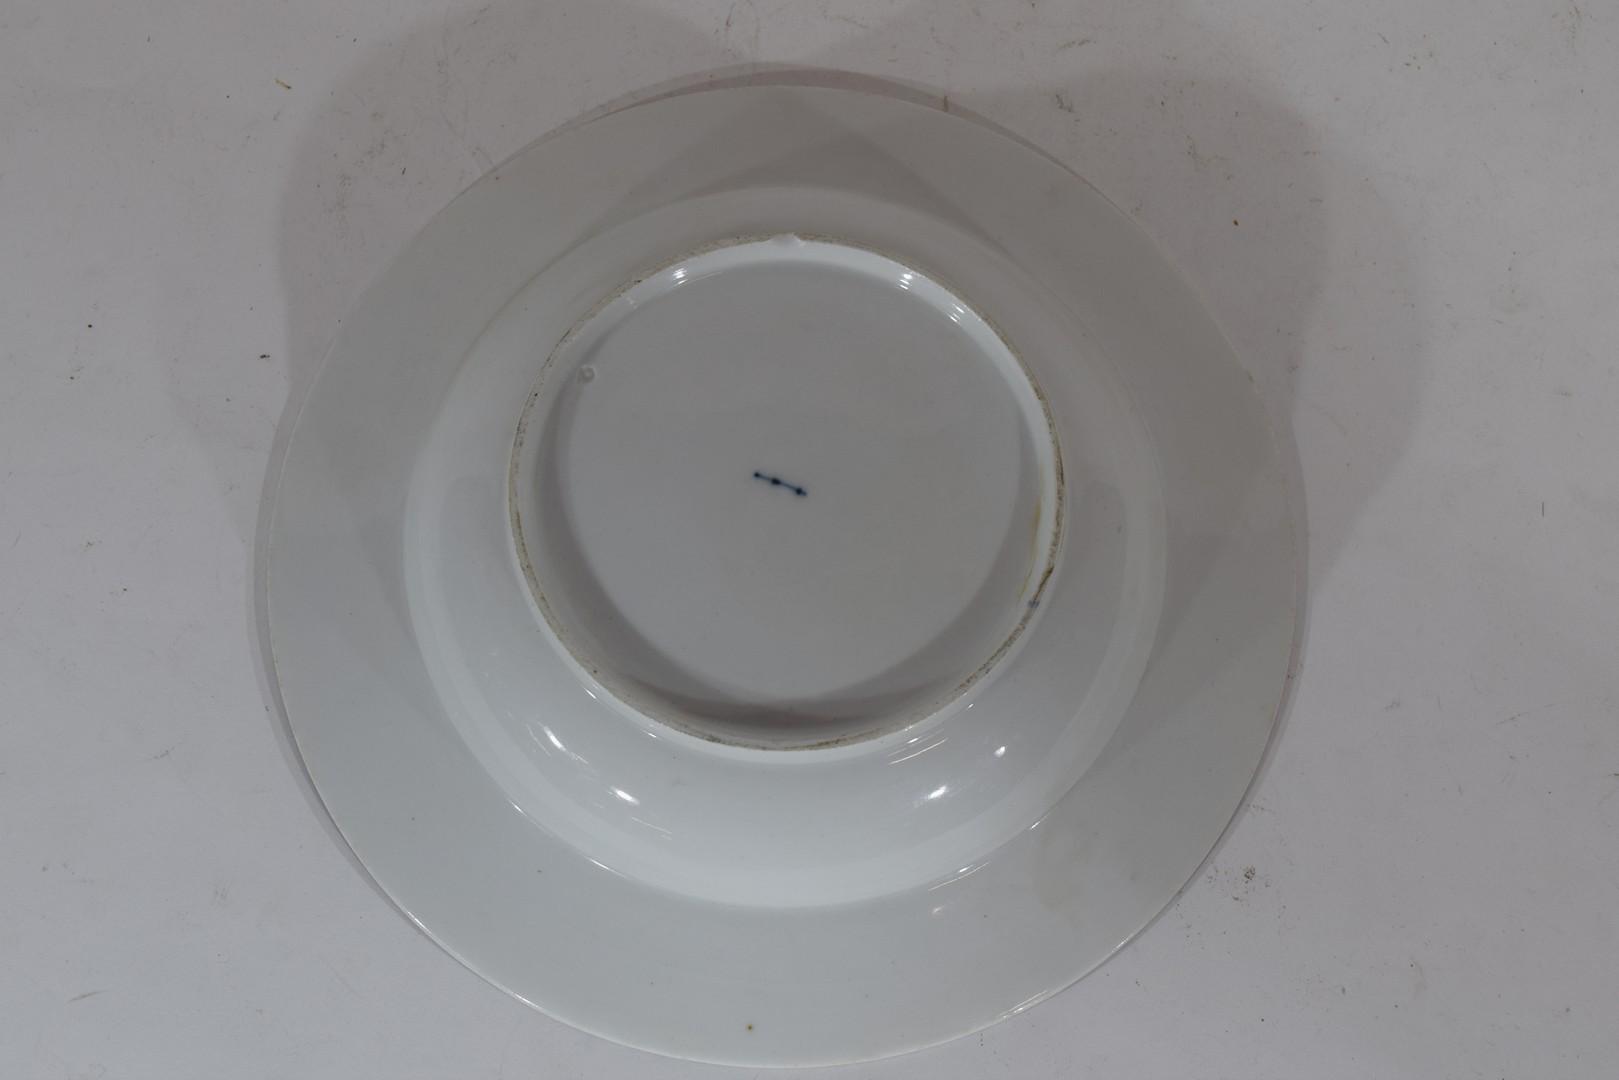 Berlin porcelain bowl decorated with central spray of roses - Image 3 of 3